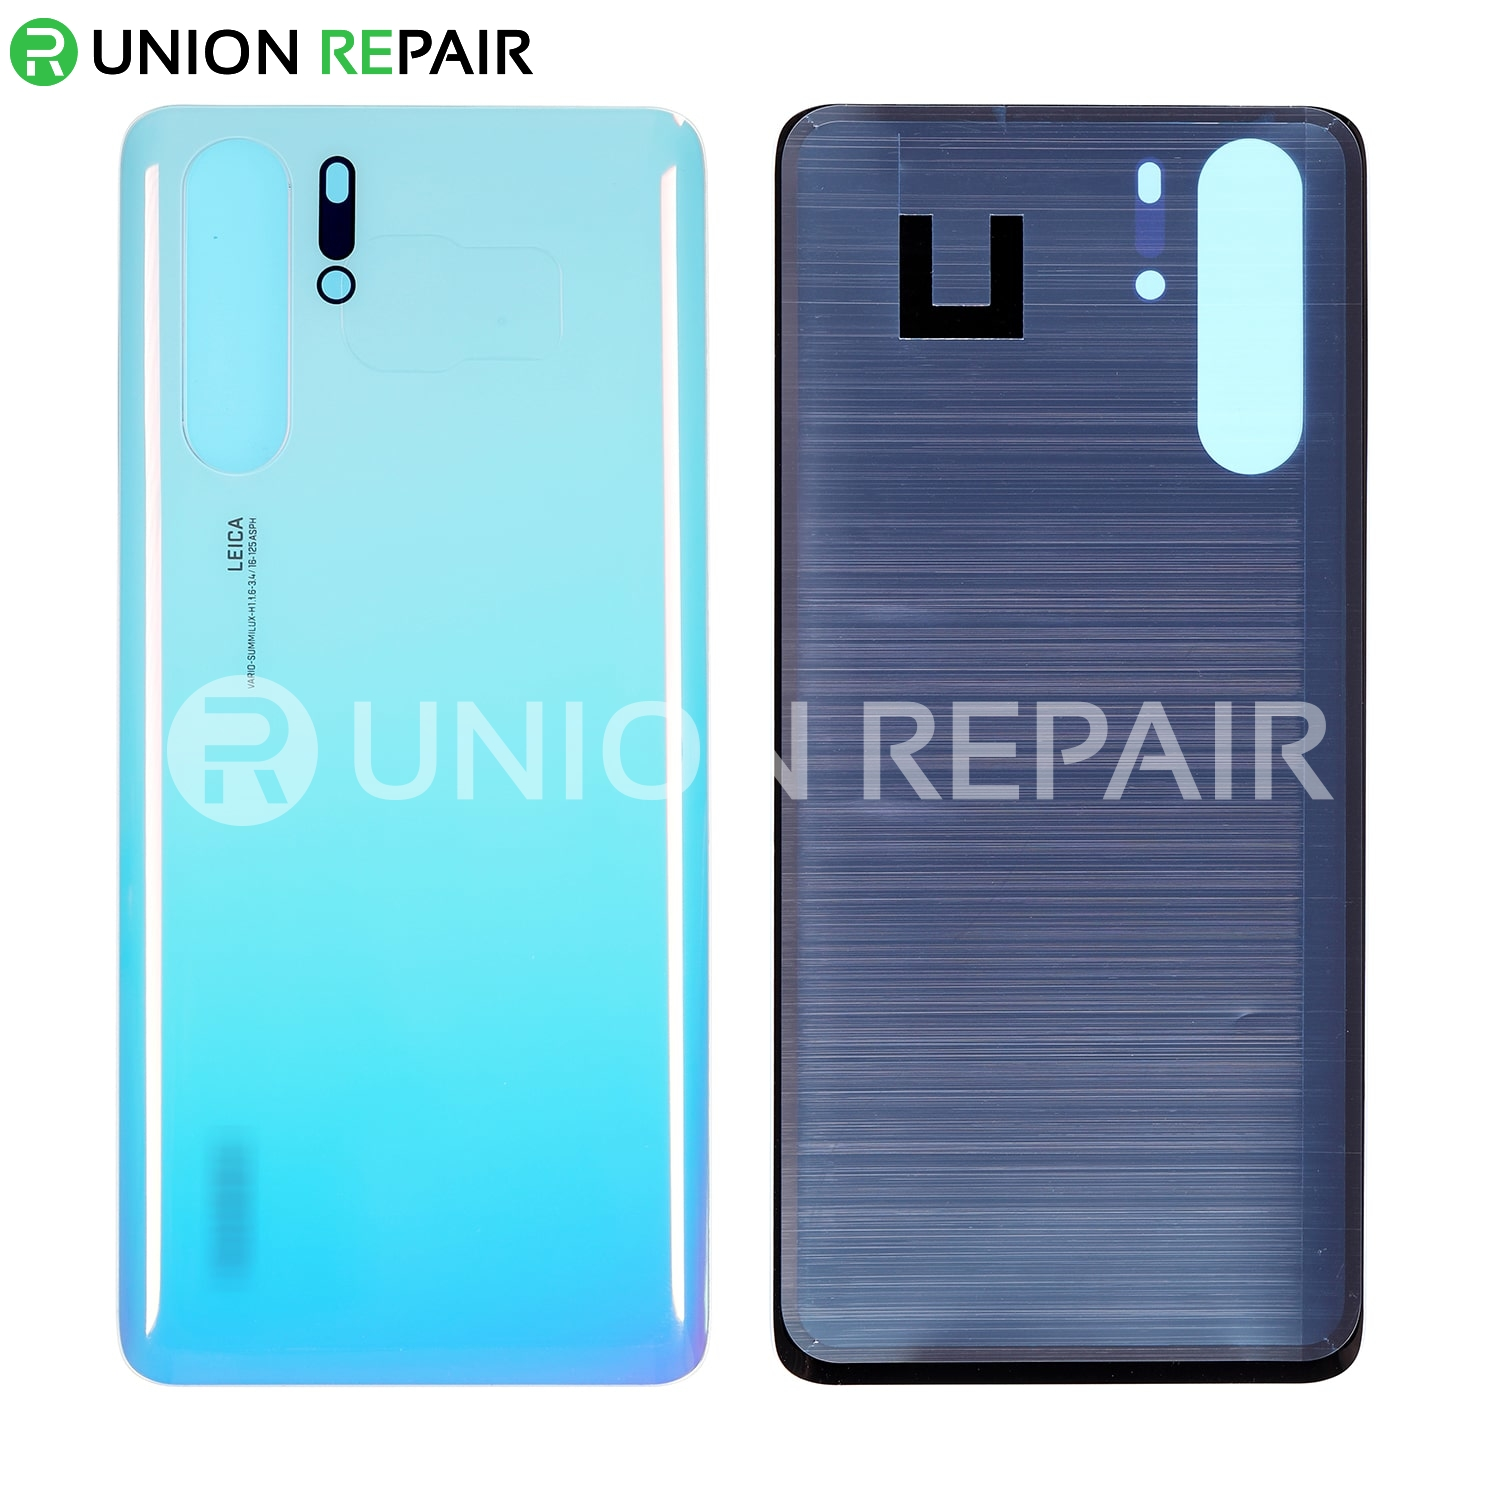 Replacement For Huawei P30 Pro Battery Door Breathing